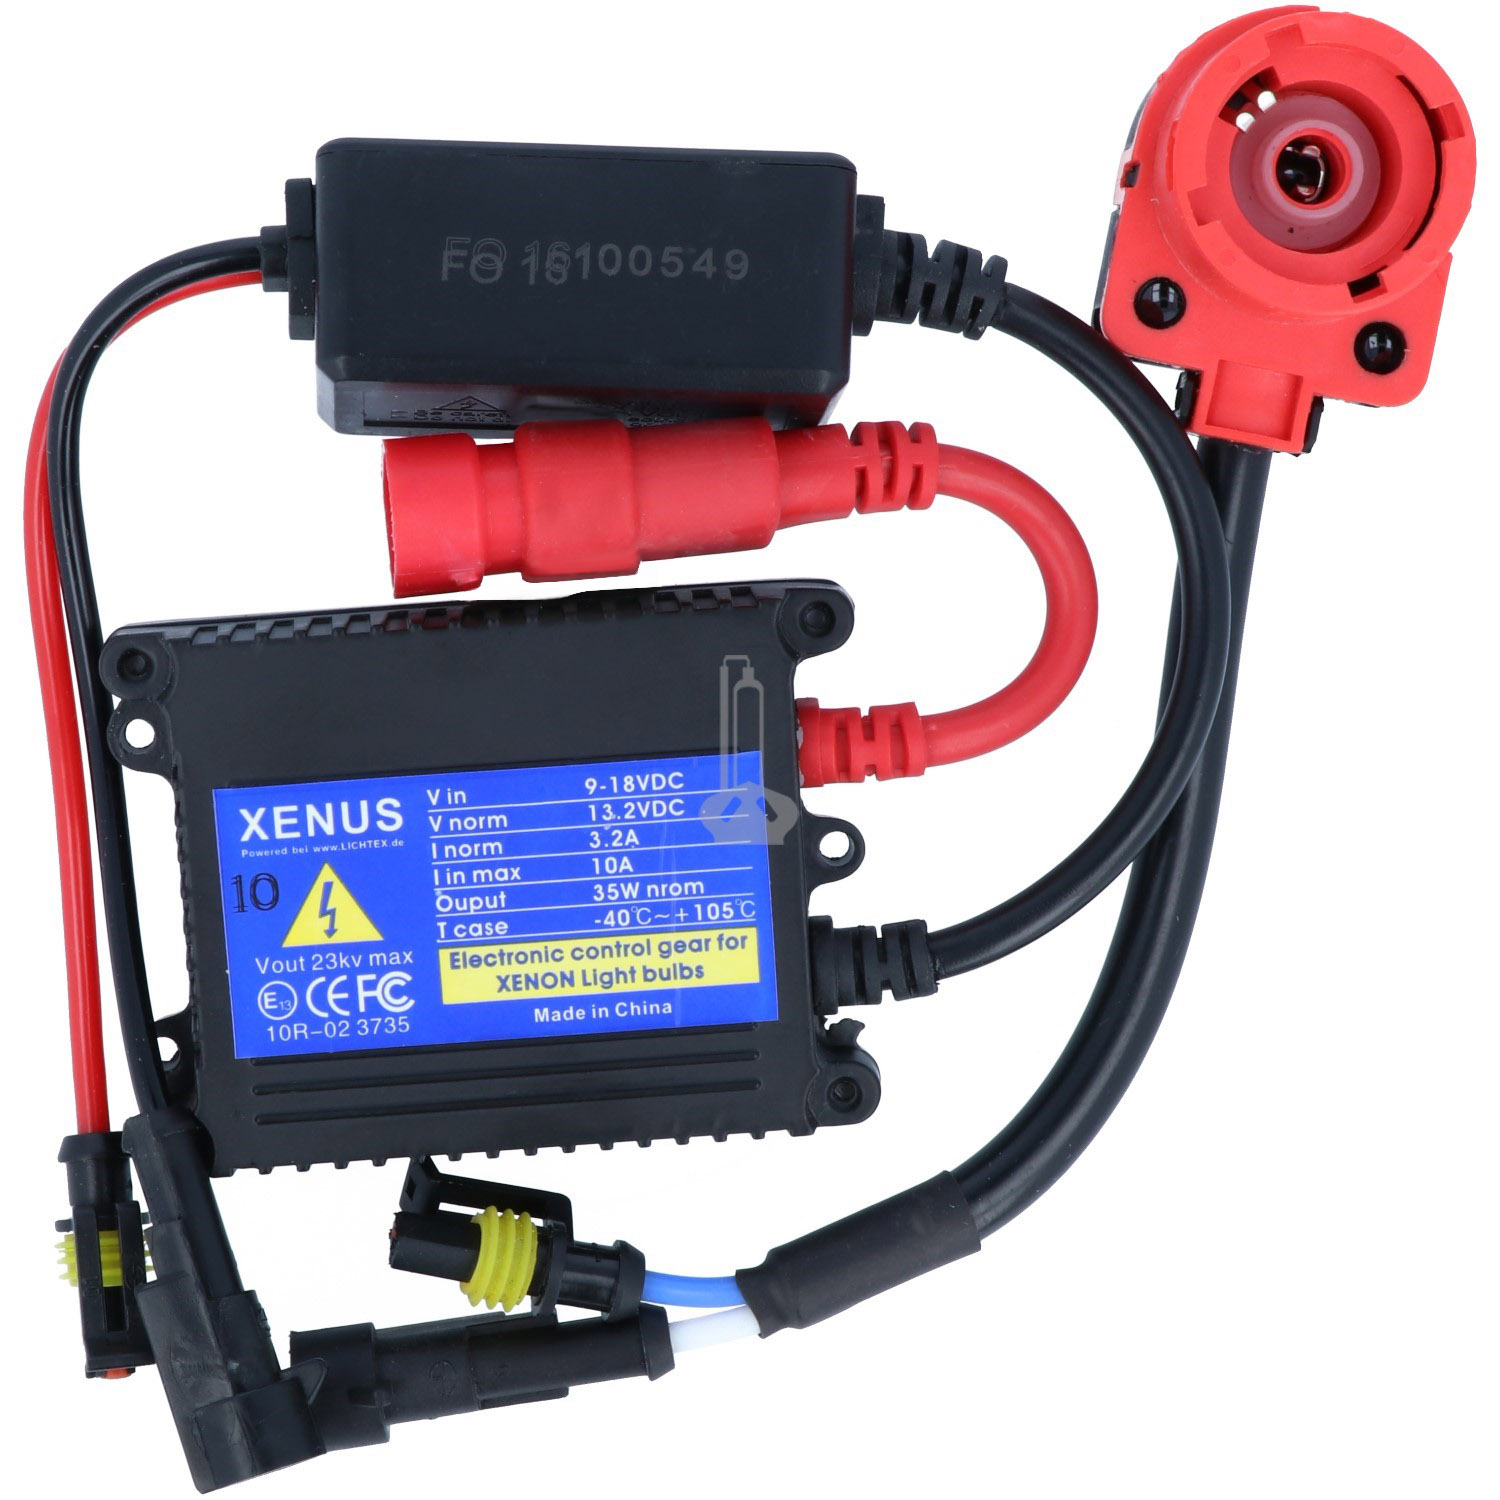 XENUS 5DV 007 760-VS Basic Xenon Headlight Ballast, Replacement for Hella